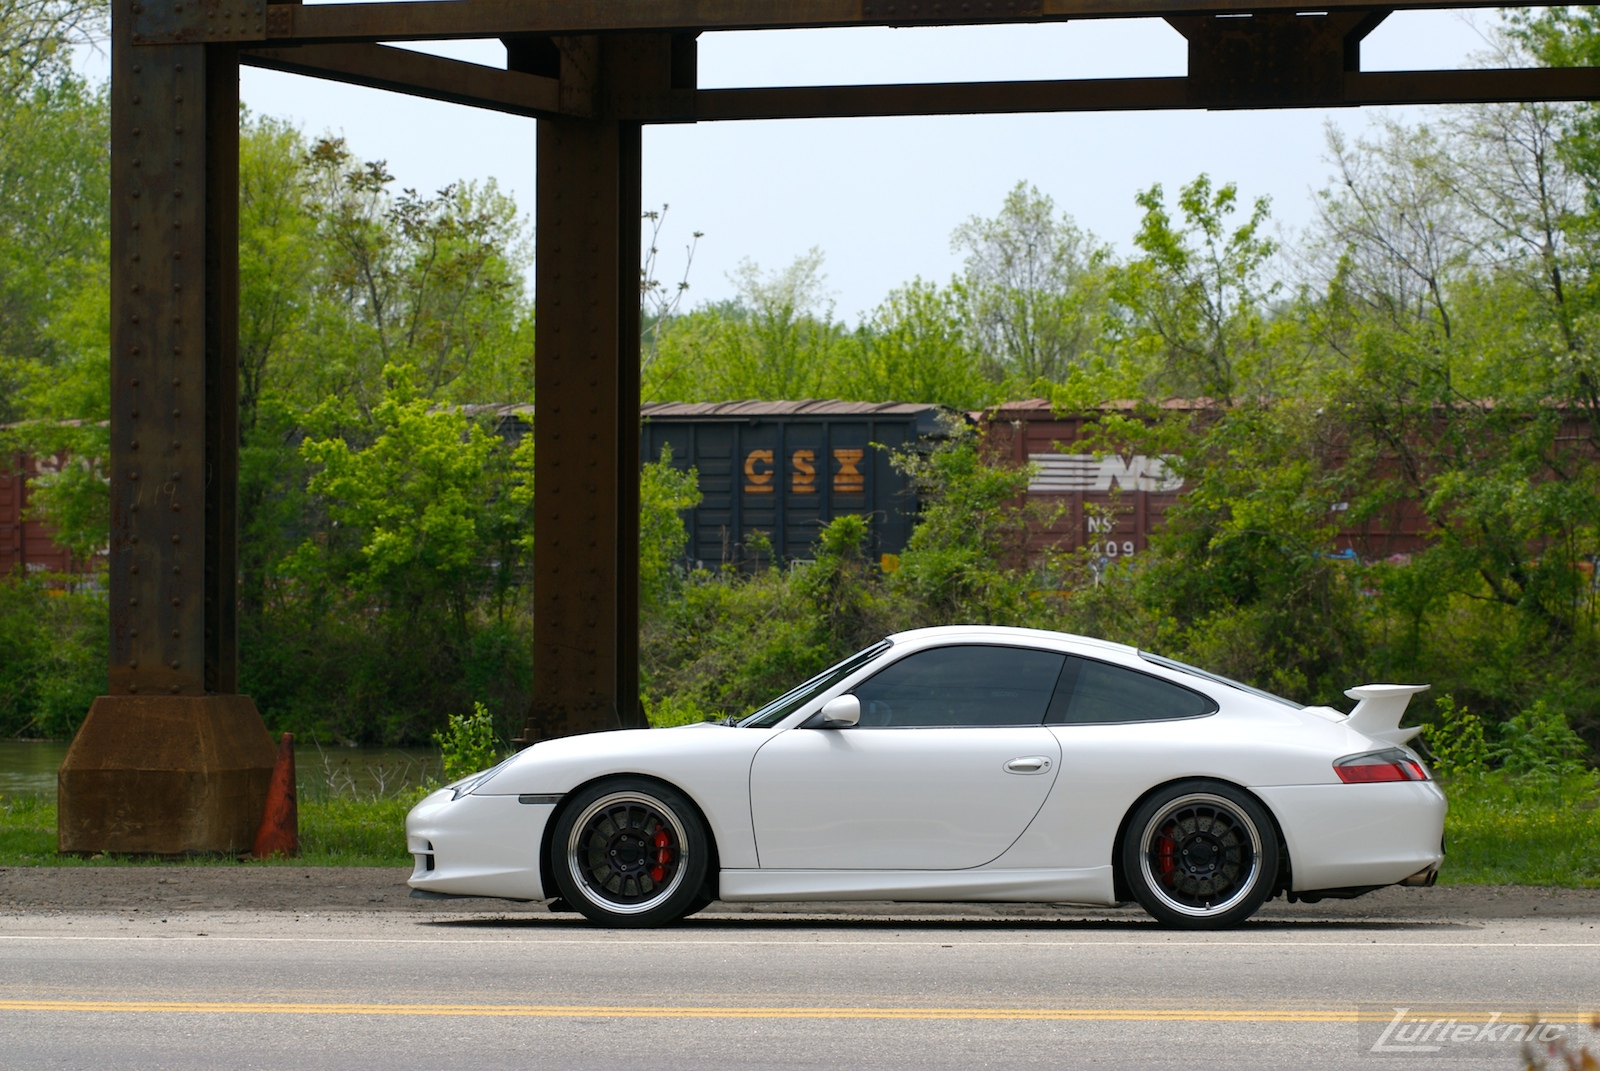 A track-prepped white Porsche 996 Gt3 with Fikse wheels in front of a train.